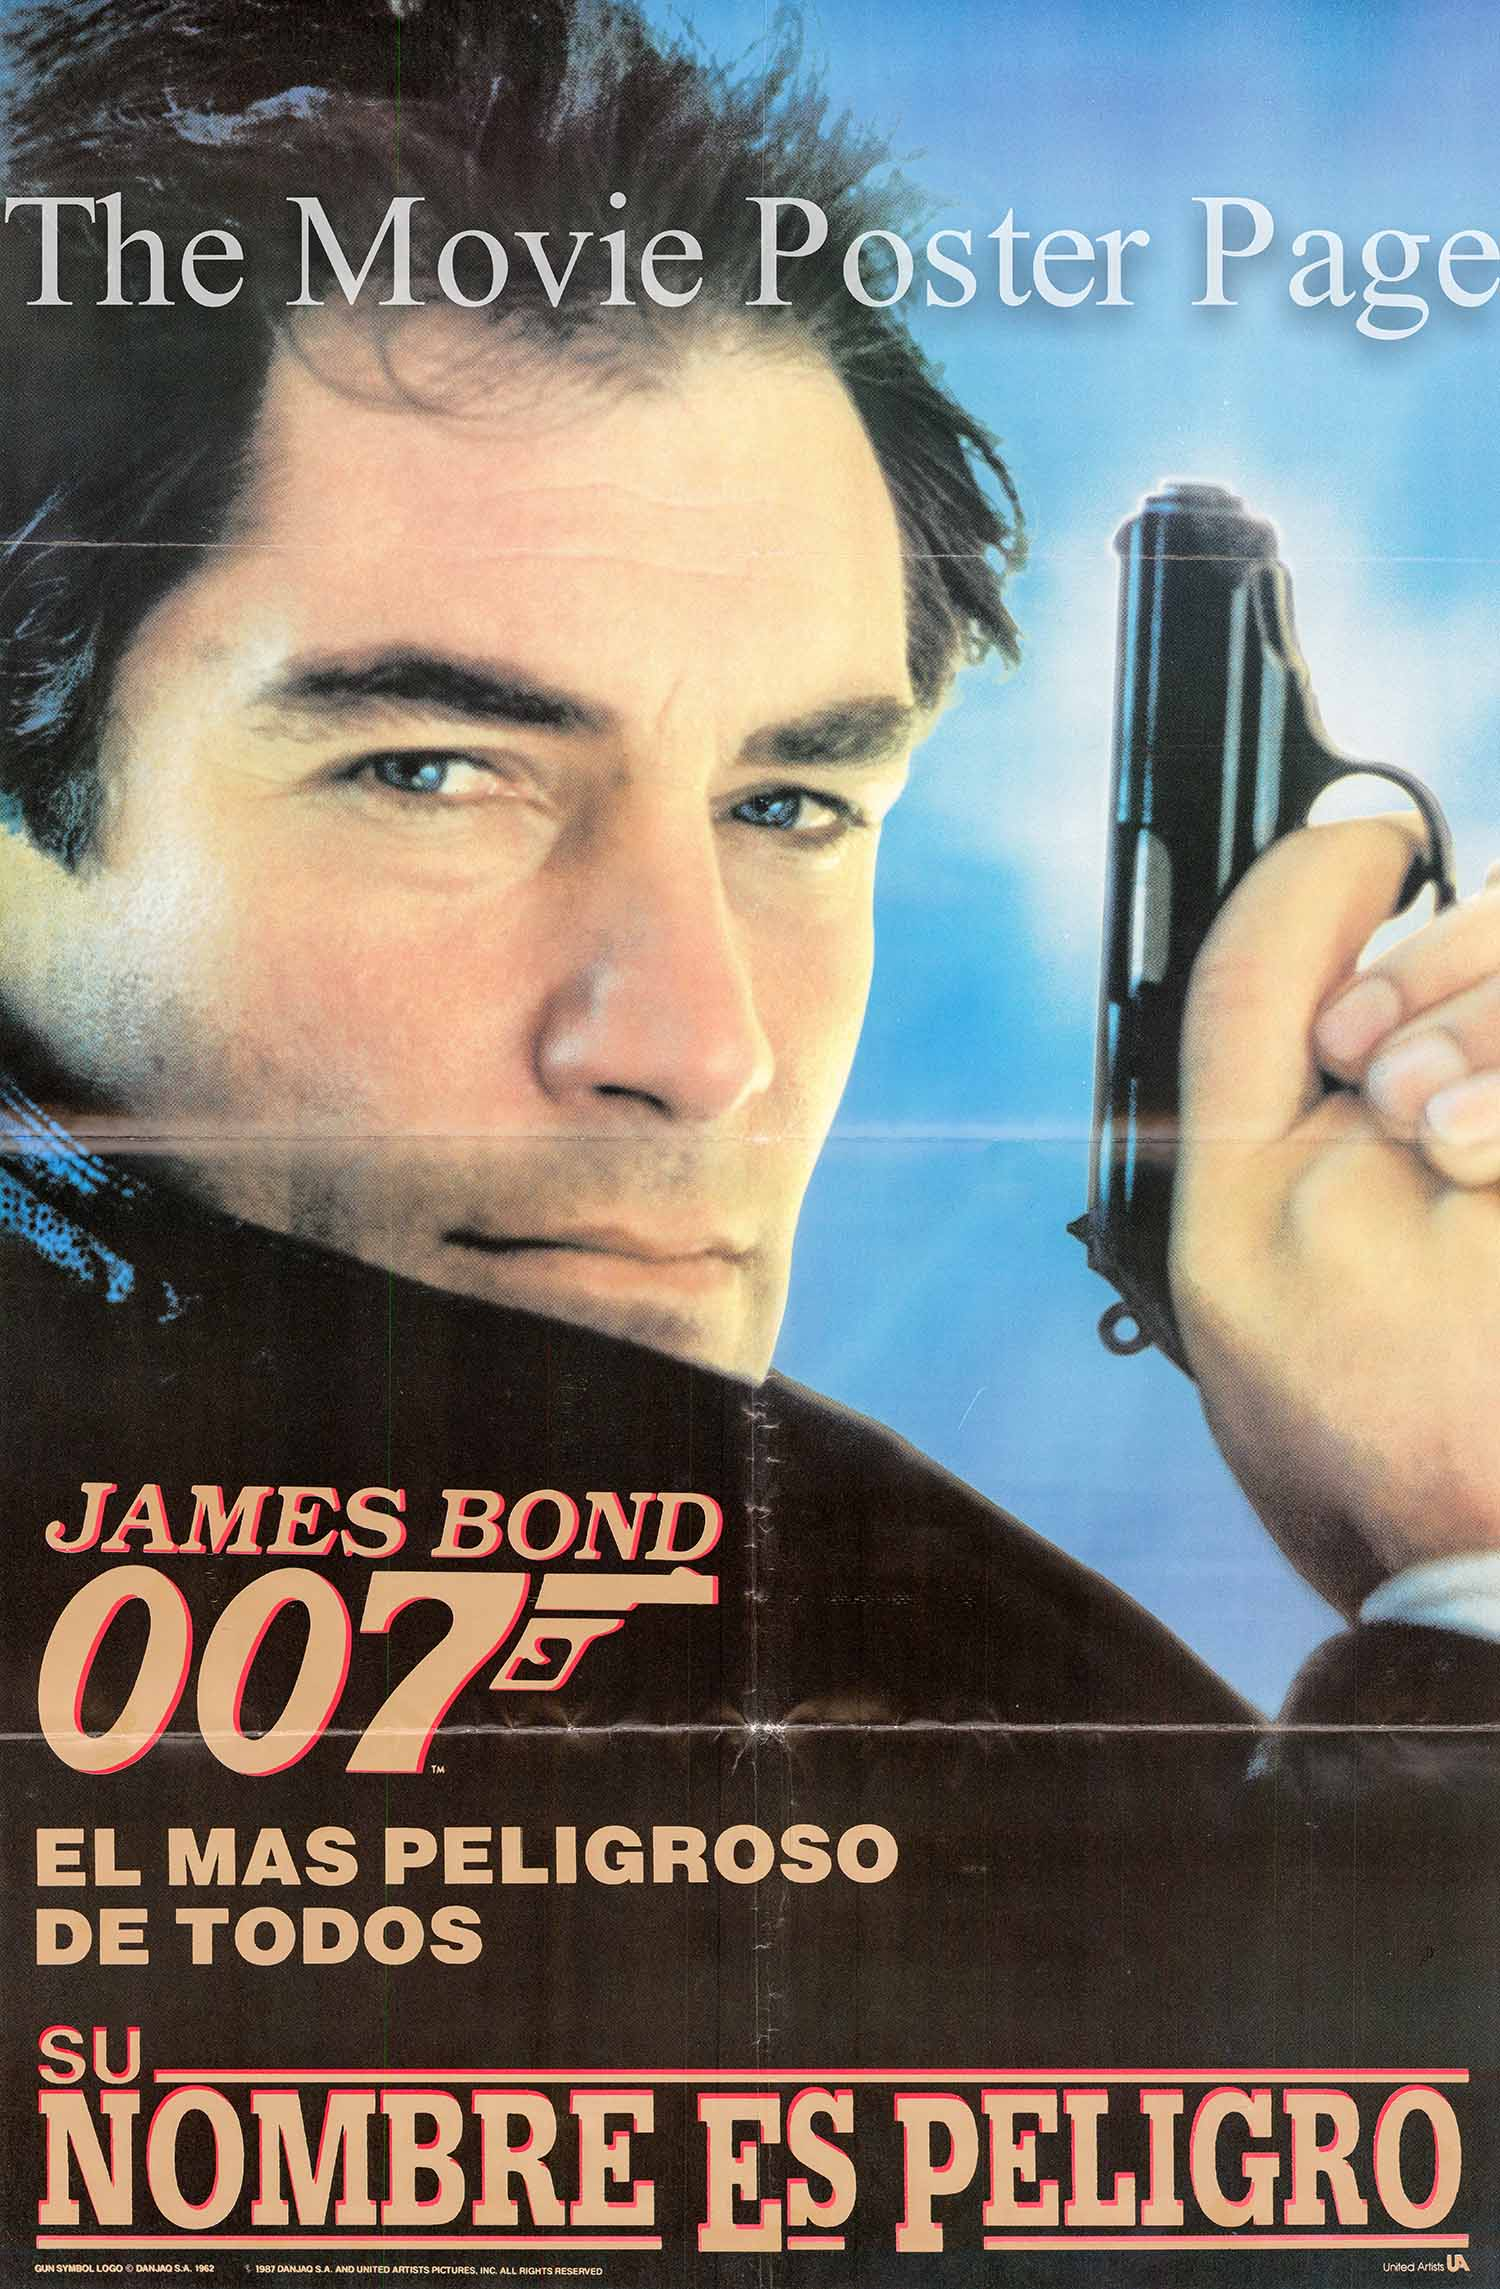 Pictured is a Spanish advance promotional poster for the 1987 John Glen film The Living Daylights, starring Timothy Dalton as James Bond.